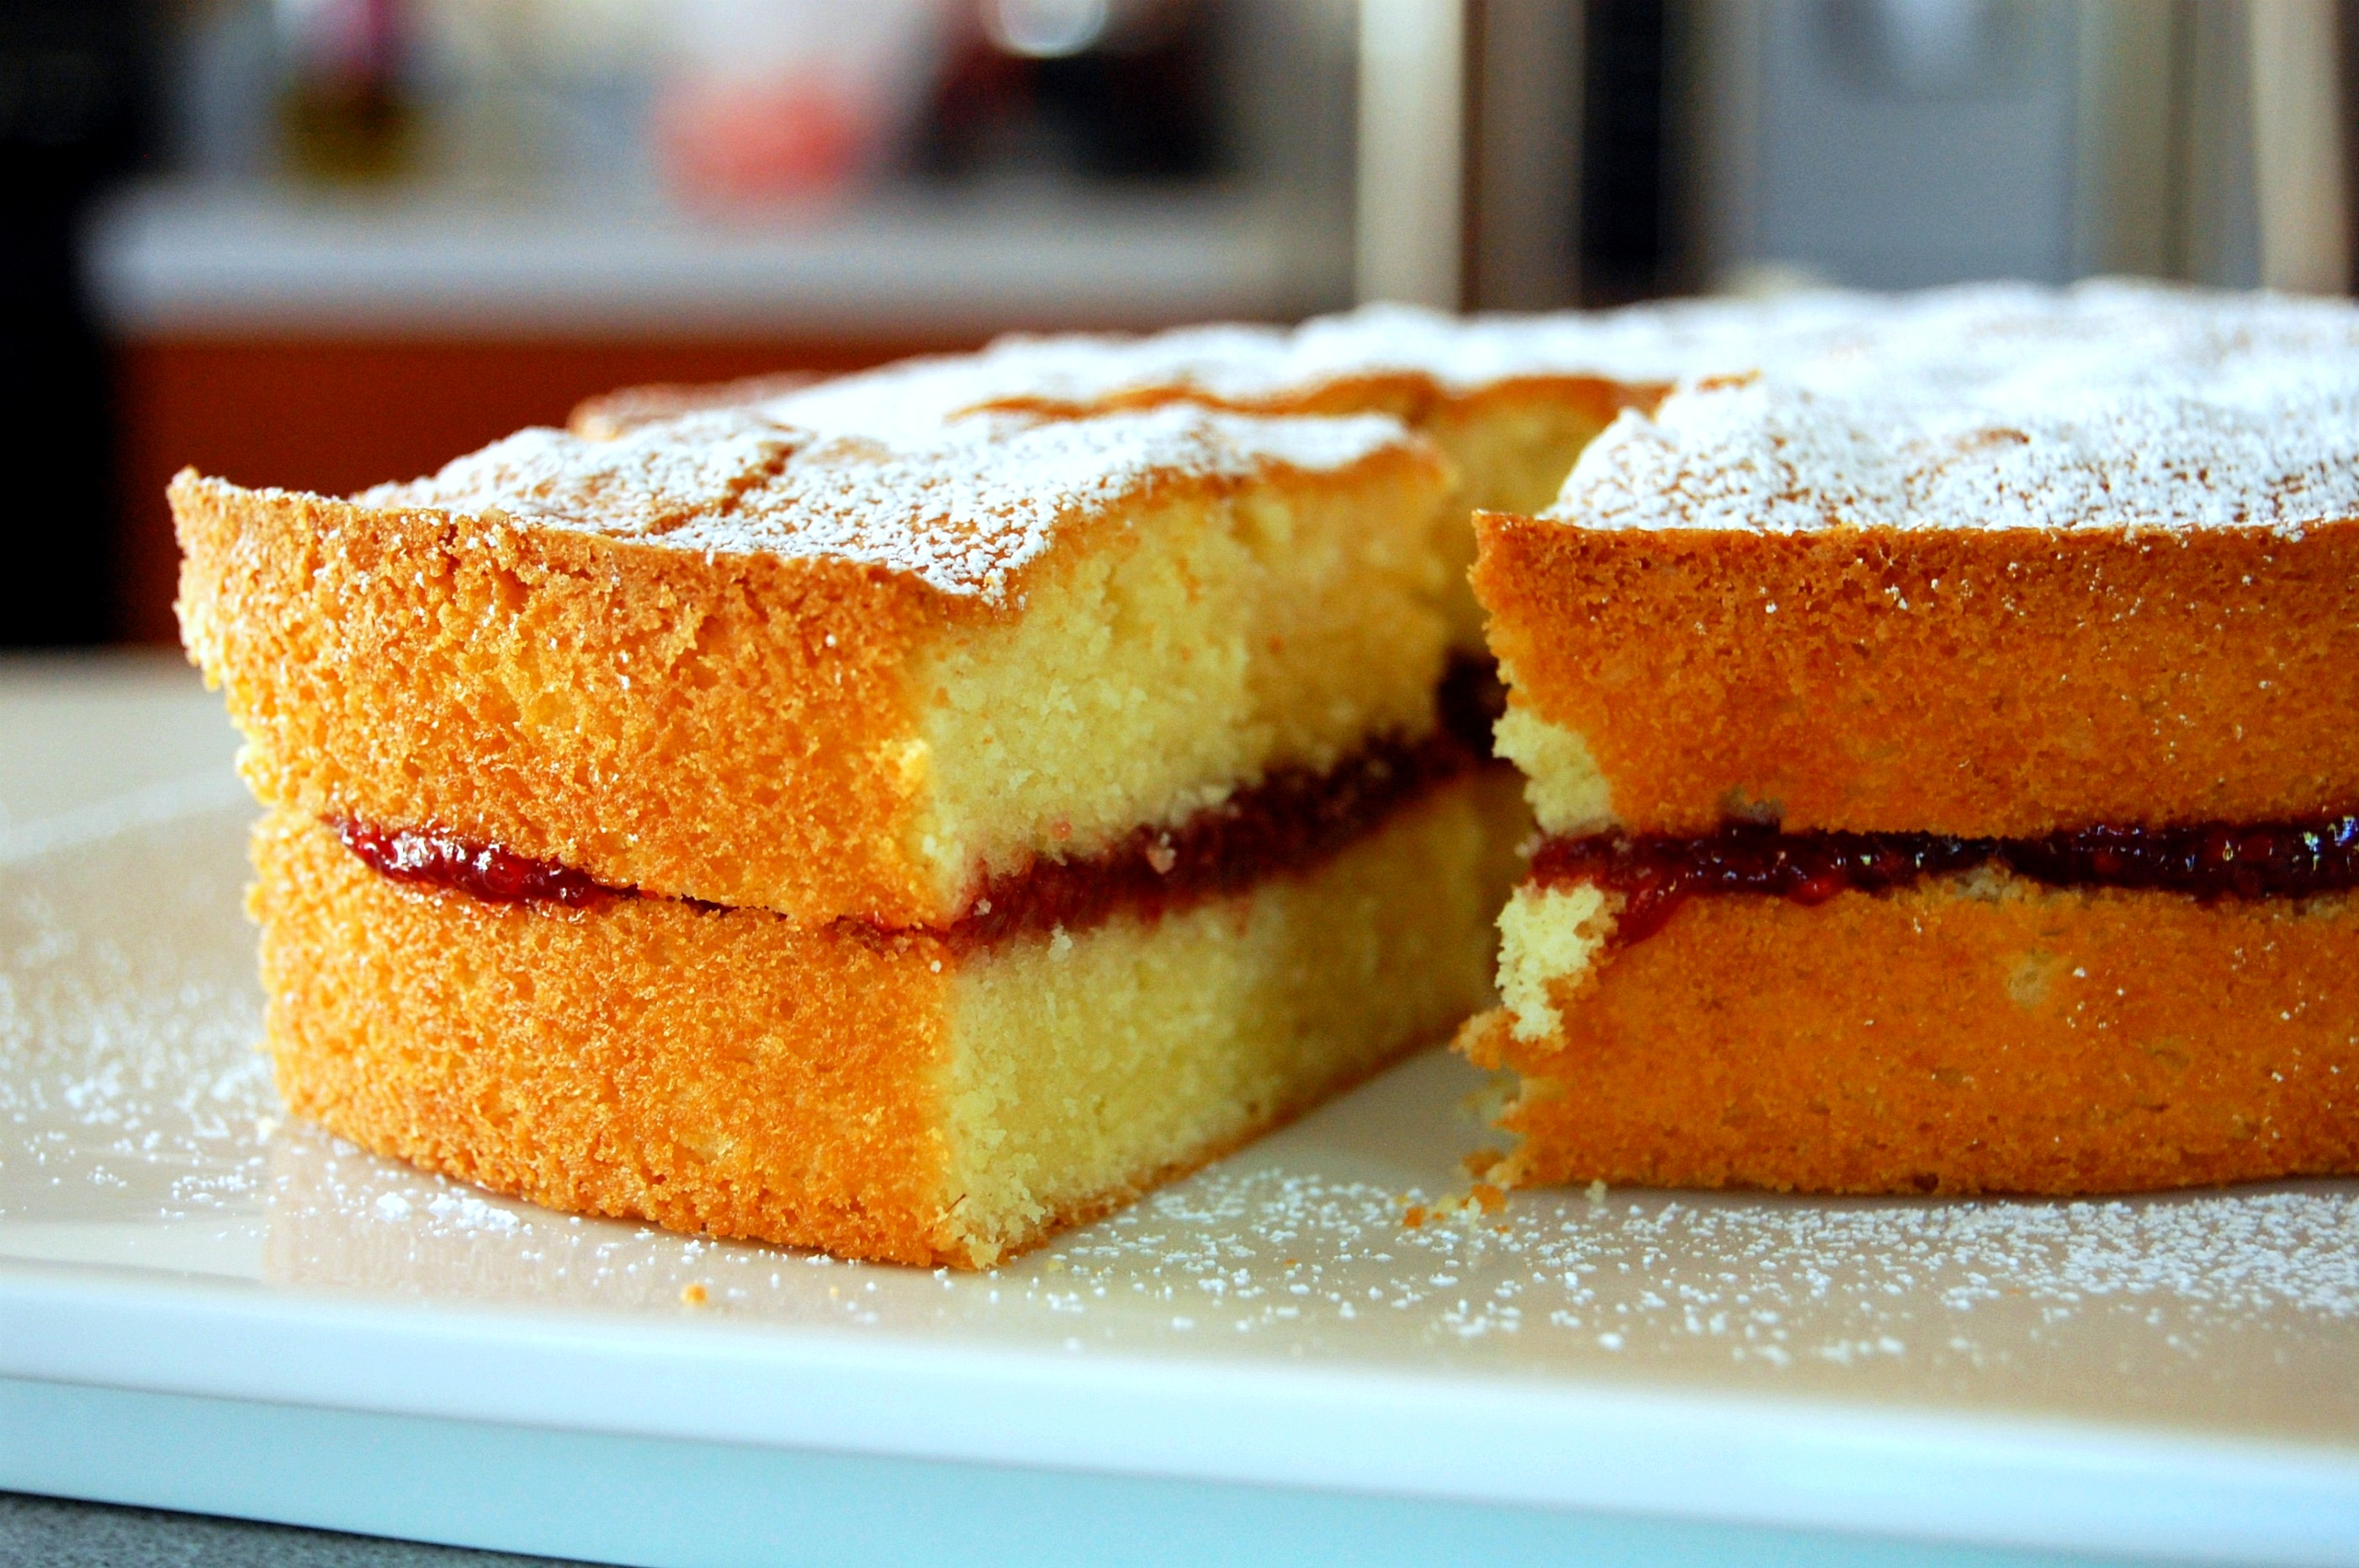 almond cake with fruit preserves